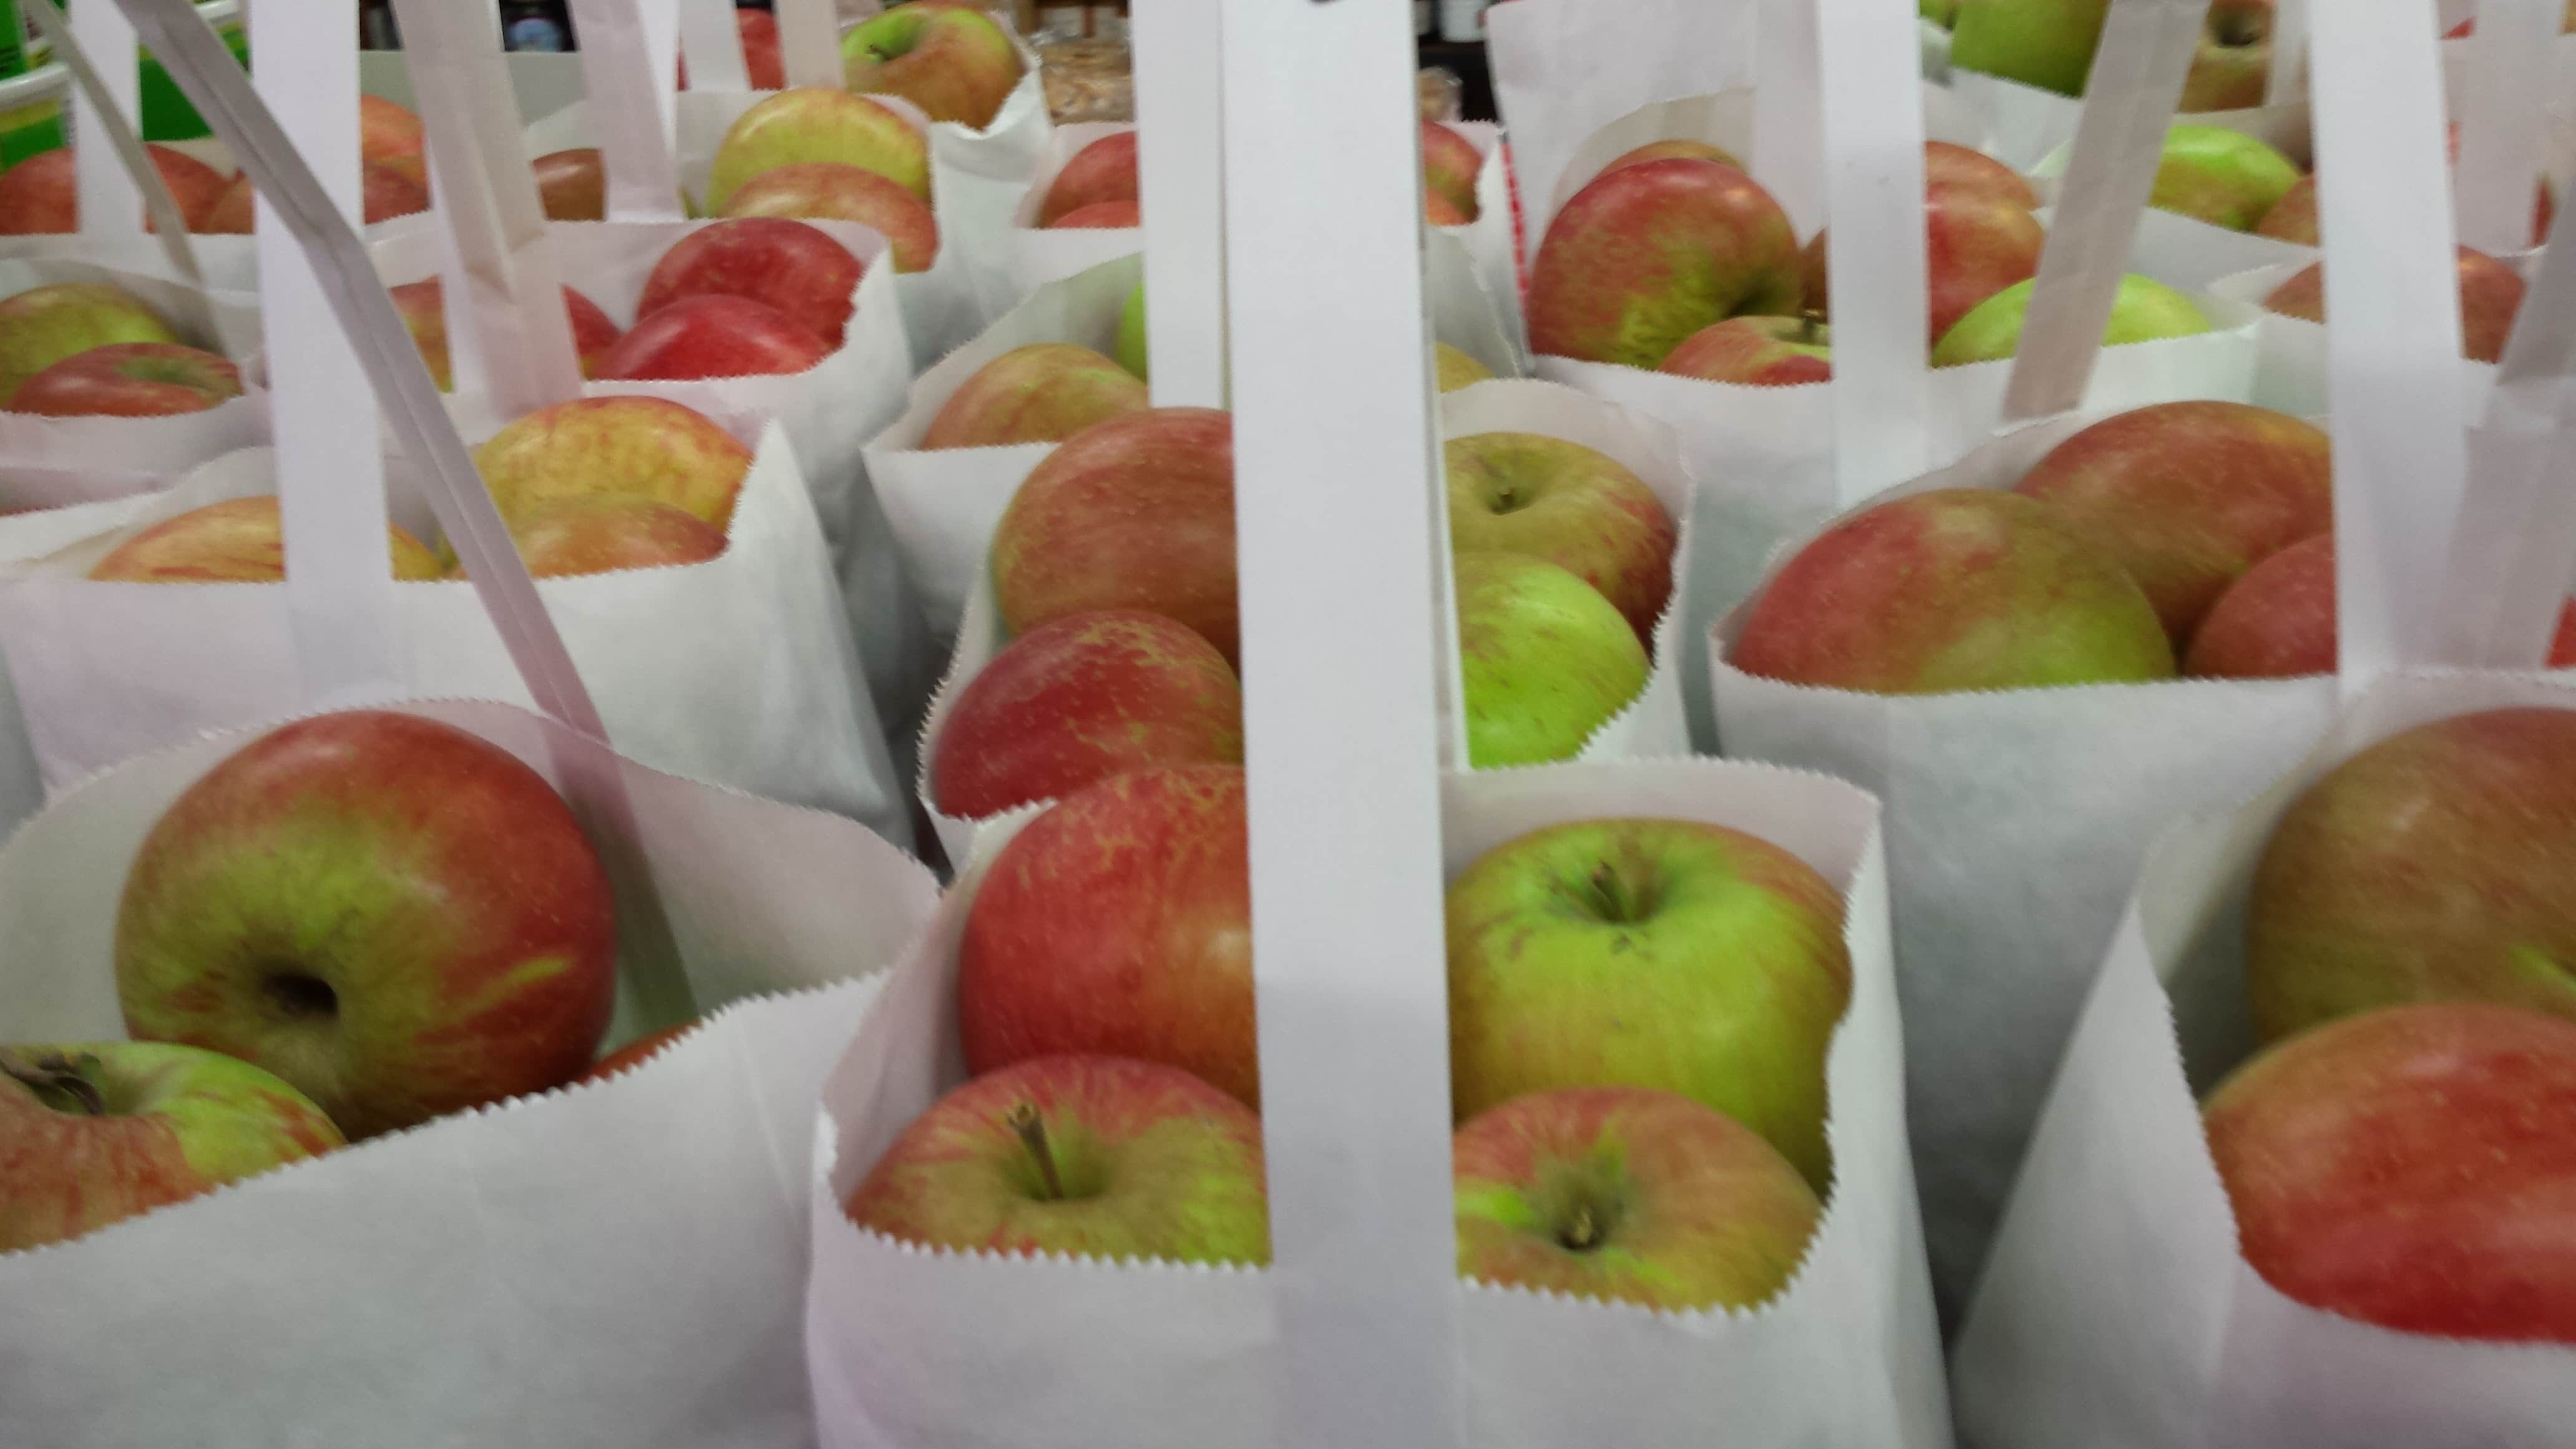 Fresh Apples at Minnesota's Largest Candy Store